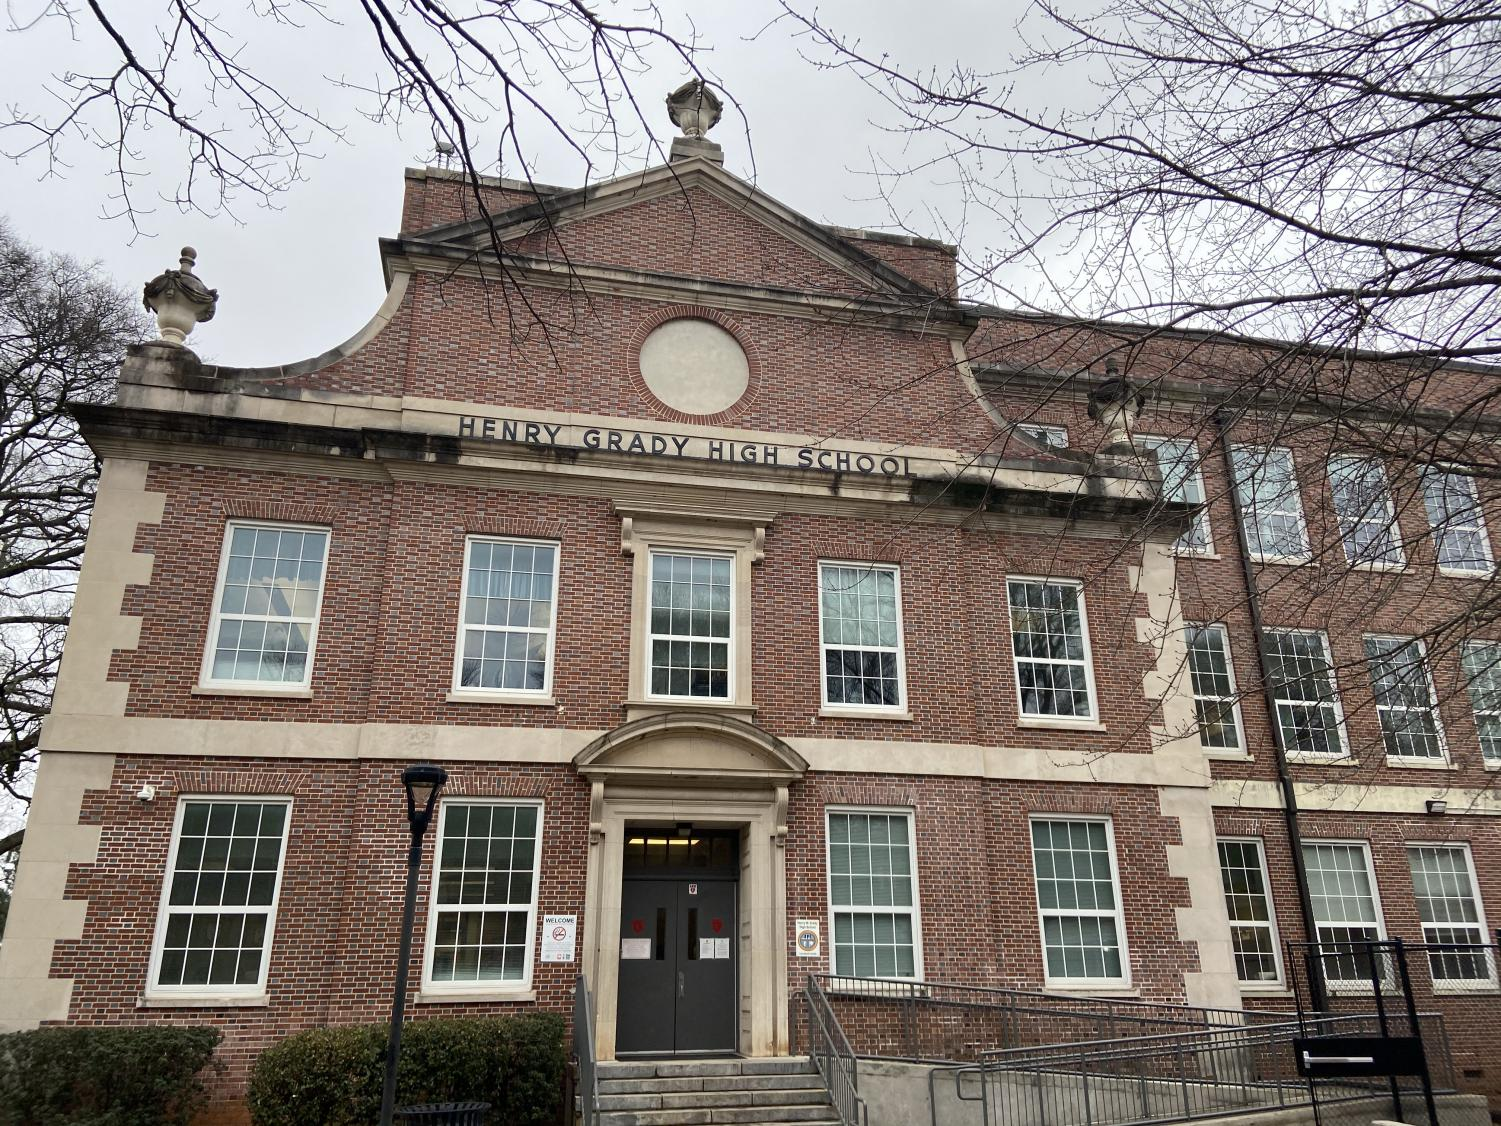 Ongoing renovations to Henry W. Grady High School has prompted a debate over the name.